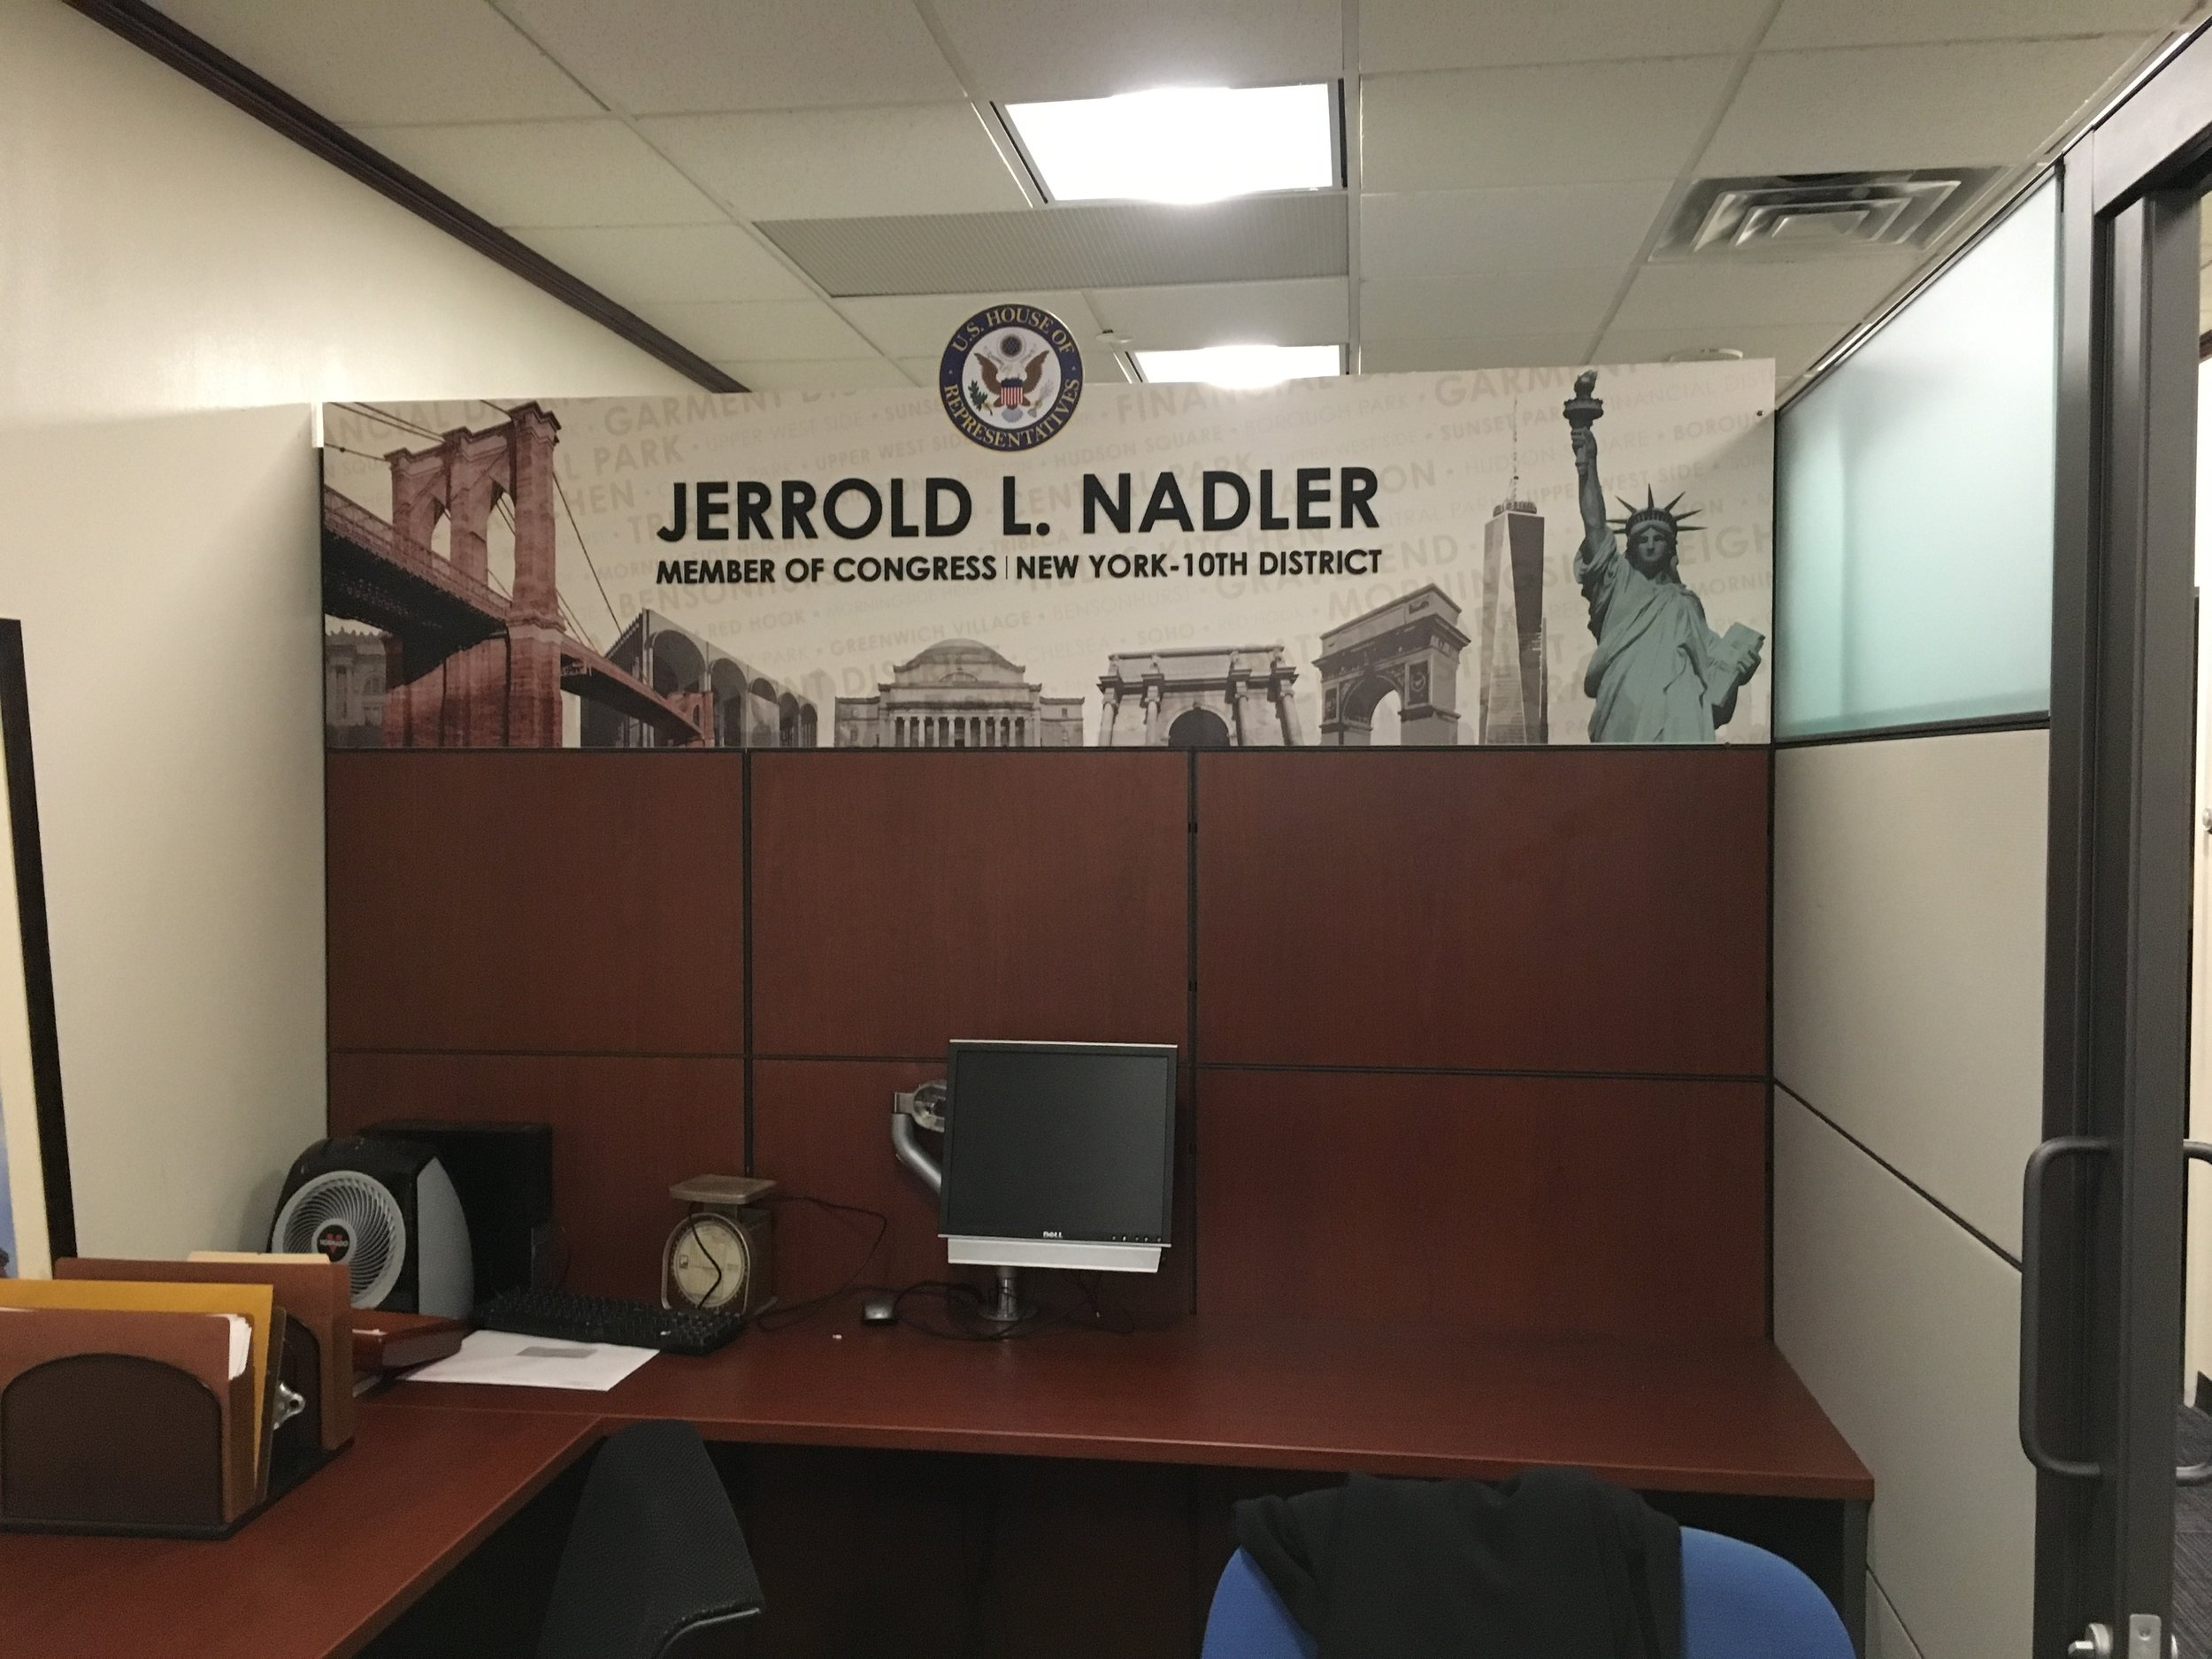 Today we had the pleasure to instal an dimensional sign for the Manhattan Office of Congressman Jerrold Nadler. It makes a great selfie sign for visitors to the office.